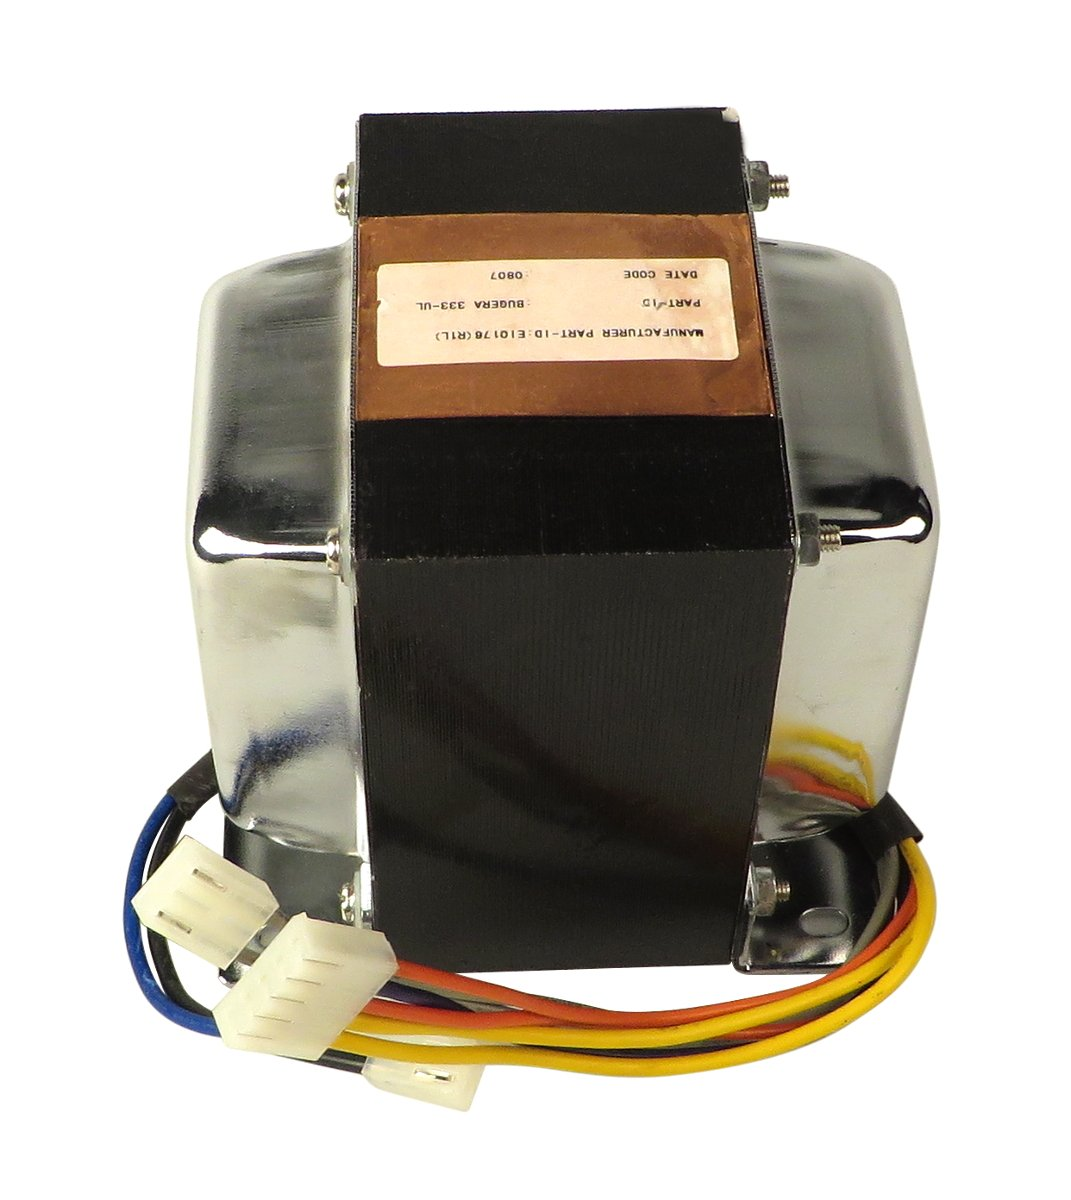 120V Power Transformer for 1990 Infinium and 333XL